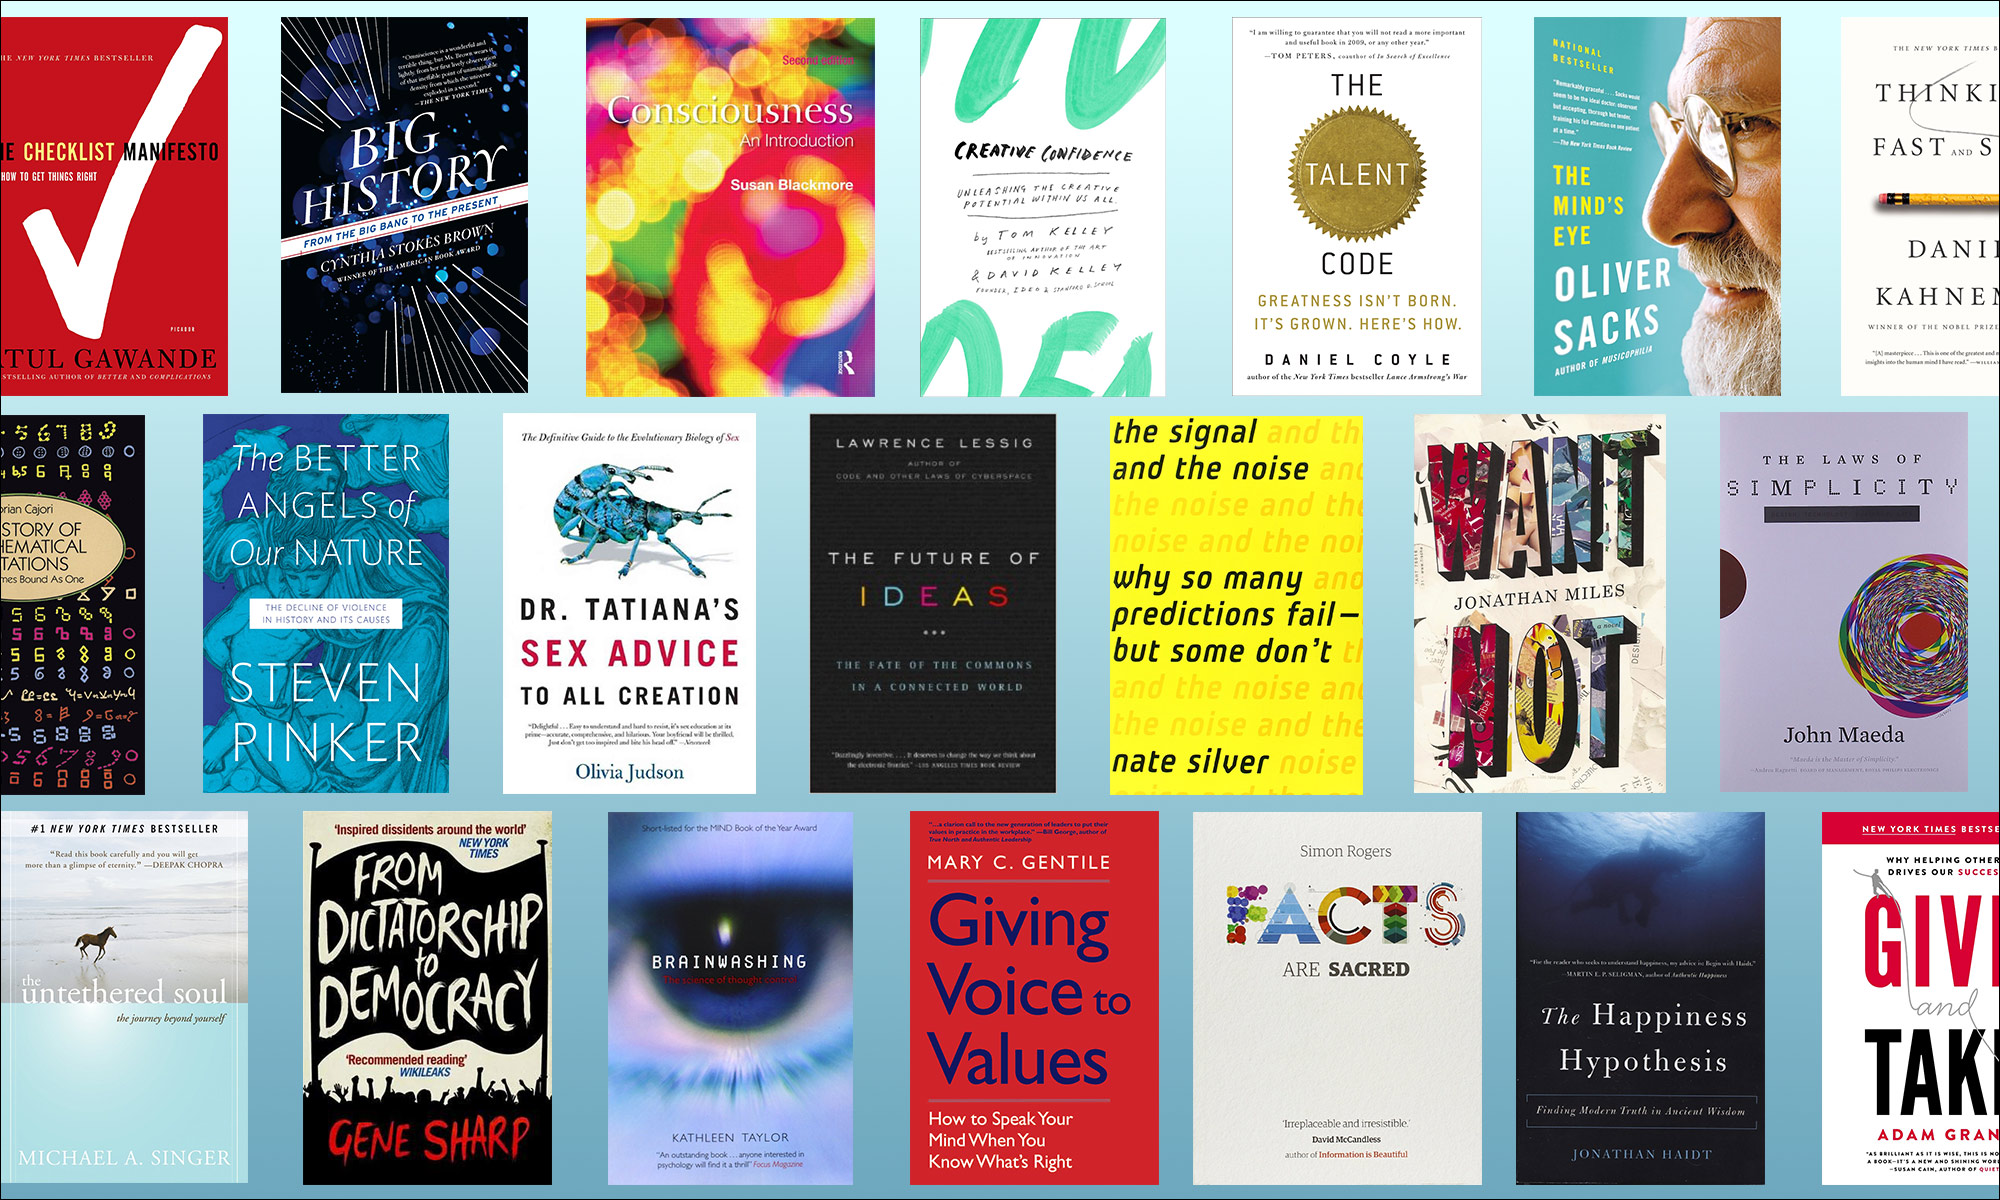 Books worth reading, as recommended by Bill Gates, Susan Cain and more…